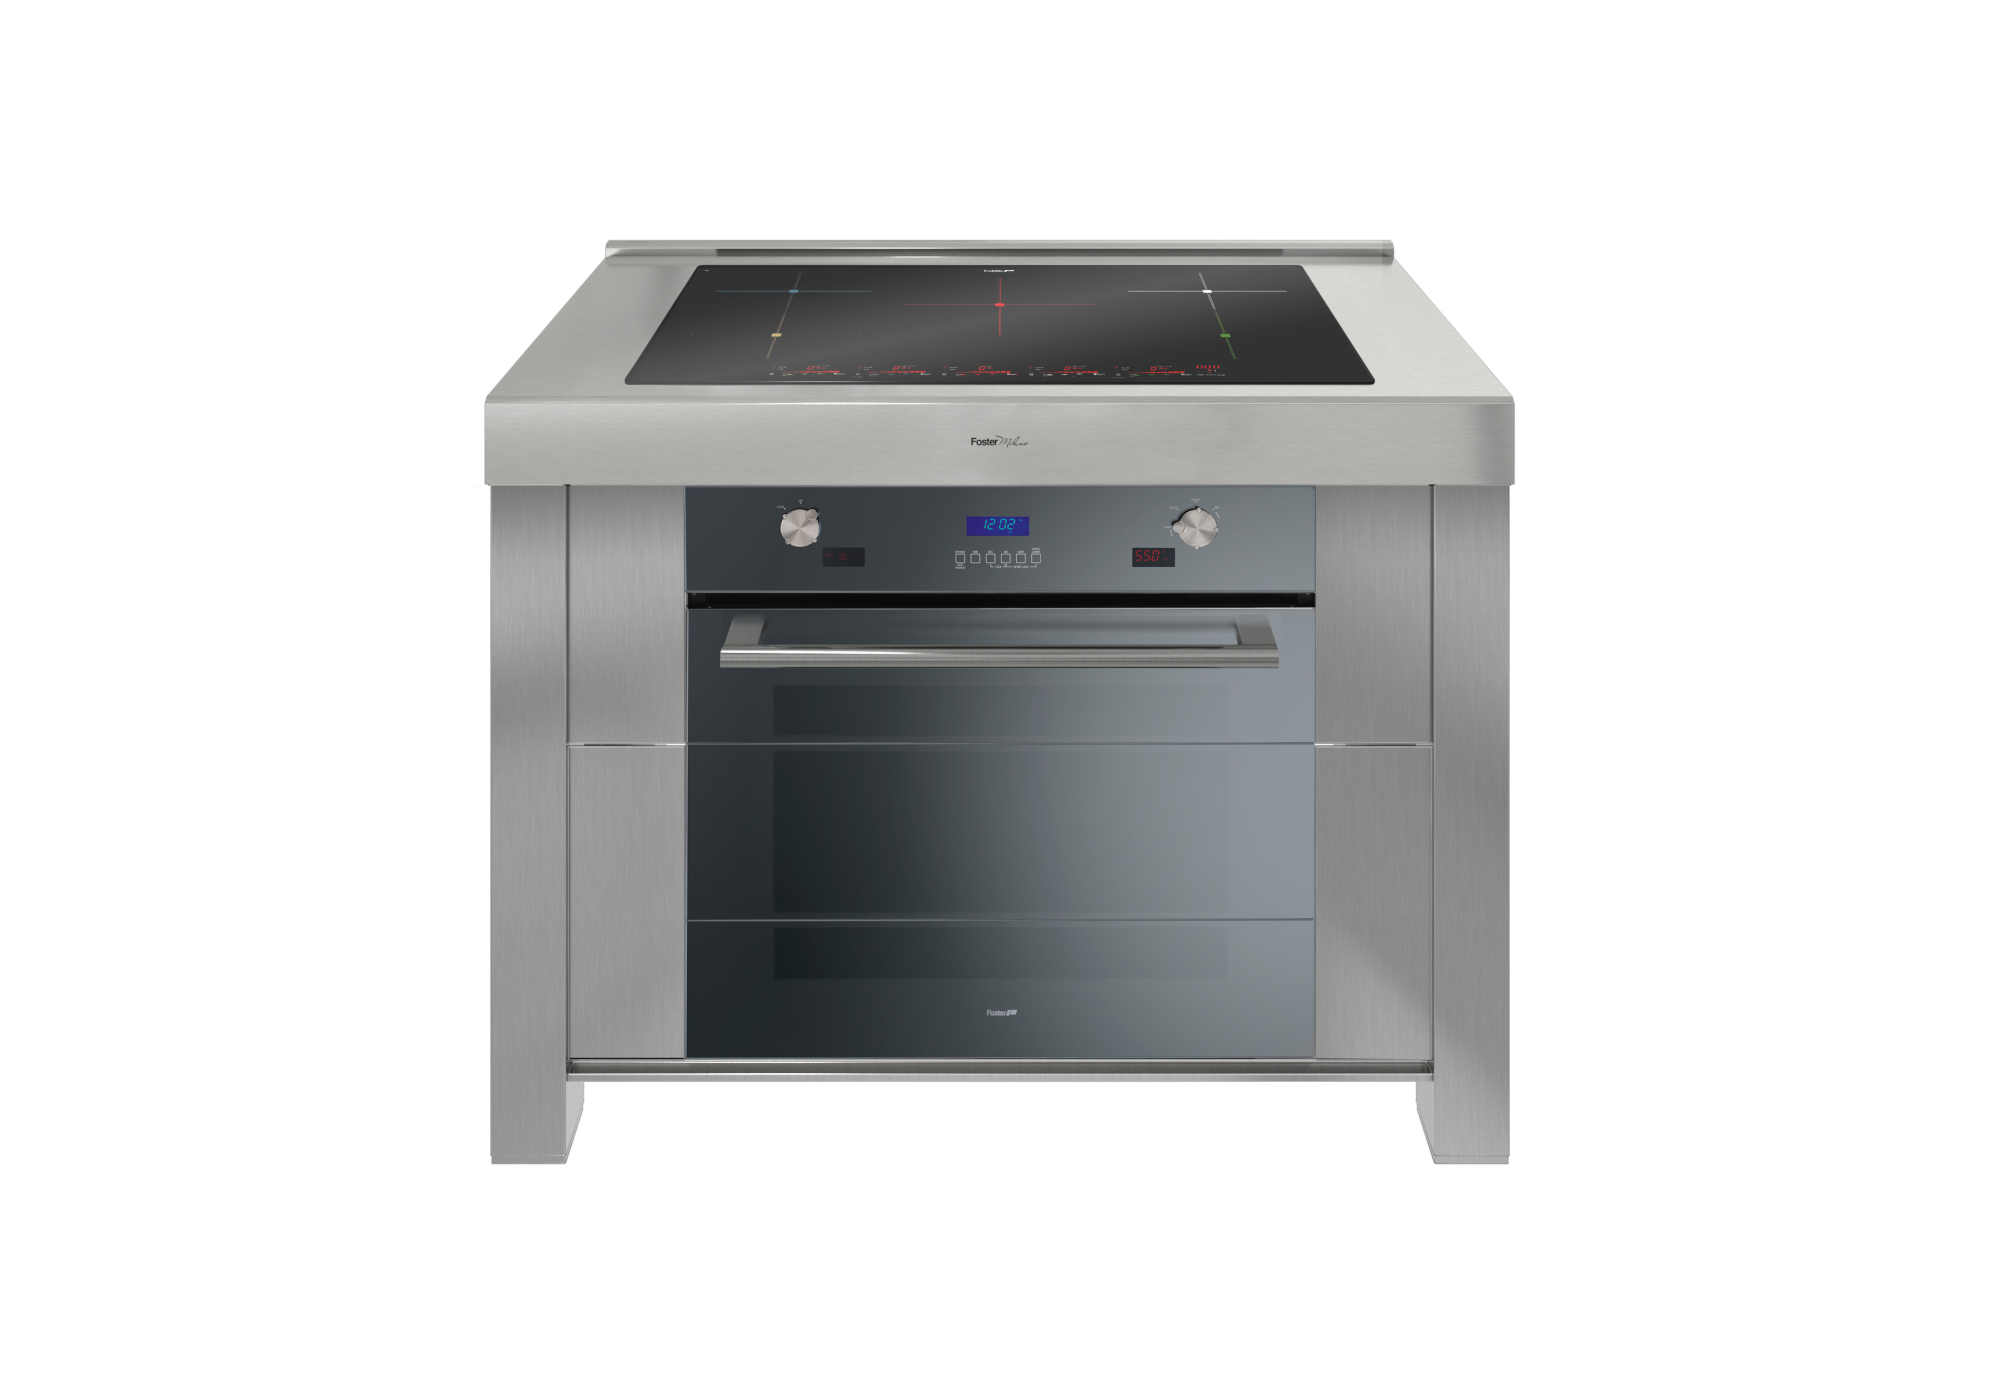 Foster Milano Induction Range – 48″ x 27″ - 7170 900